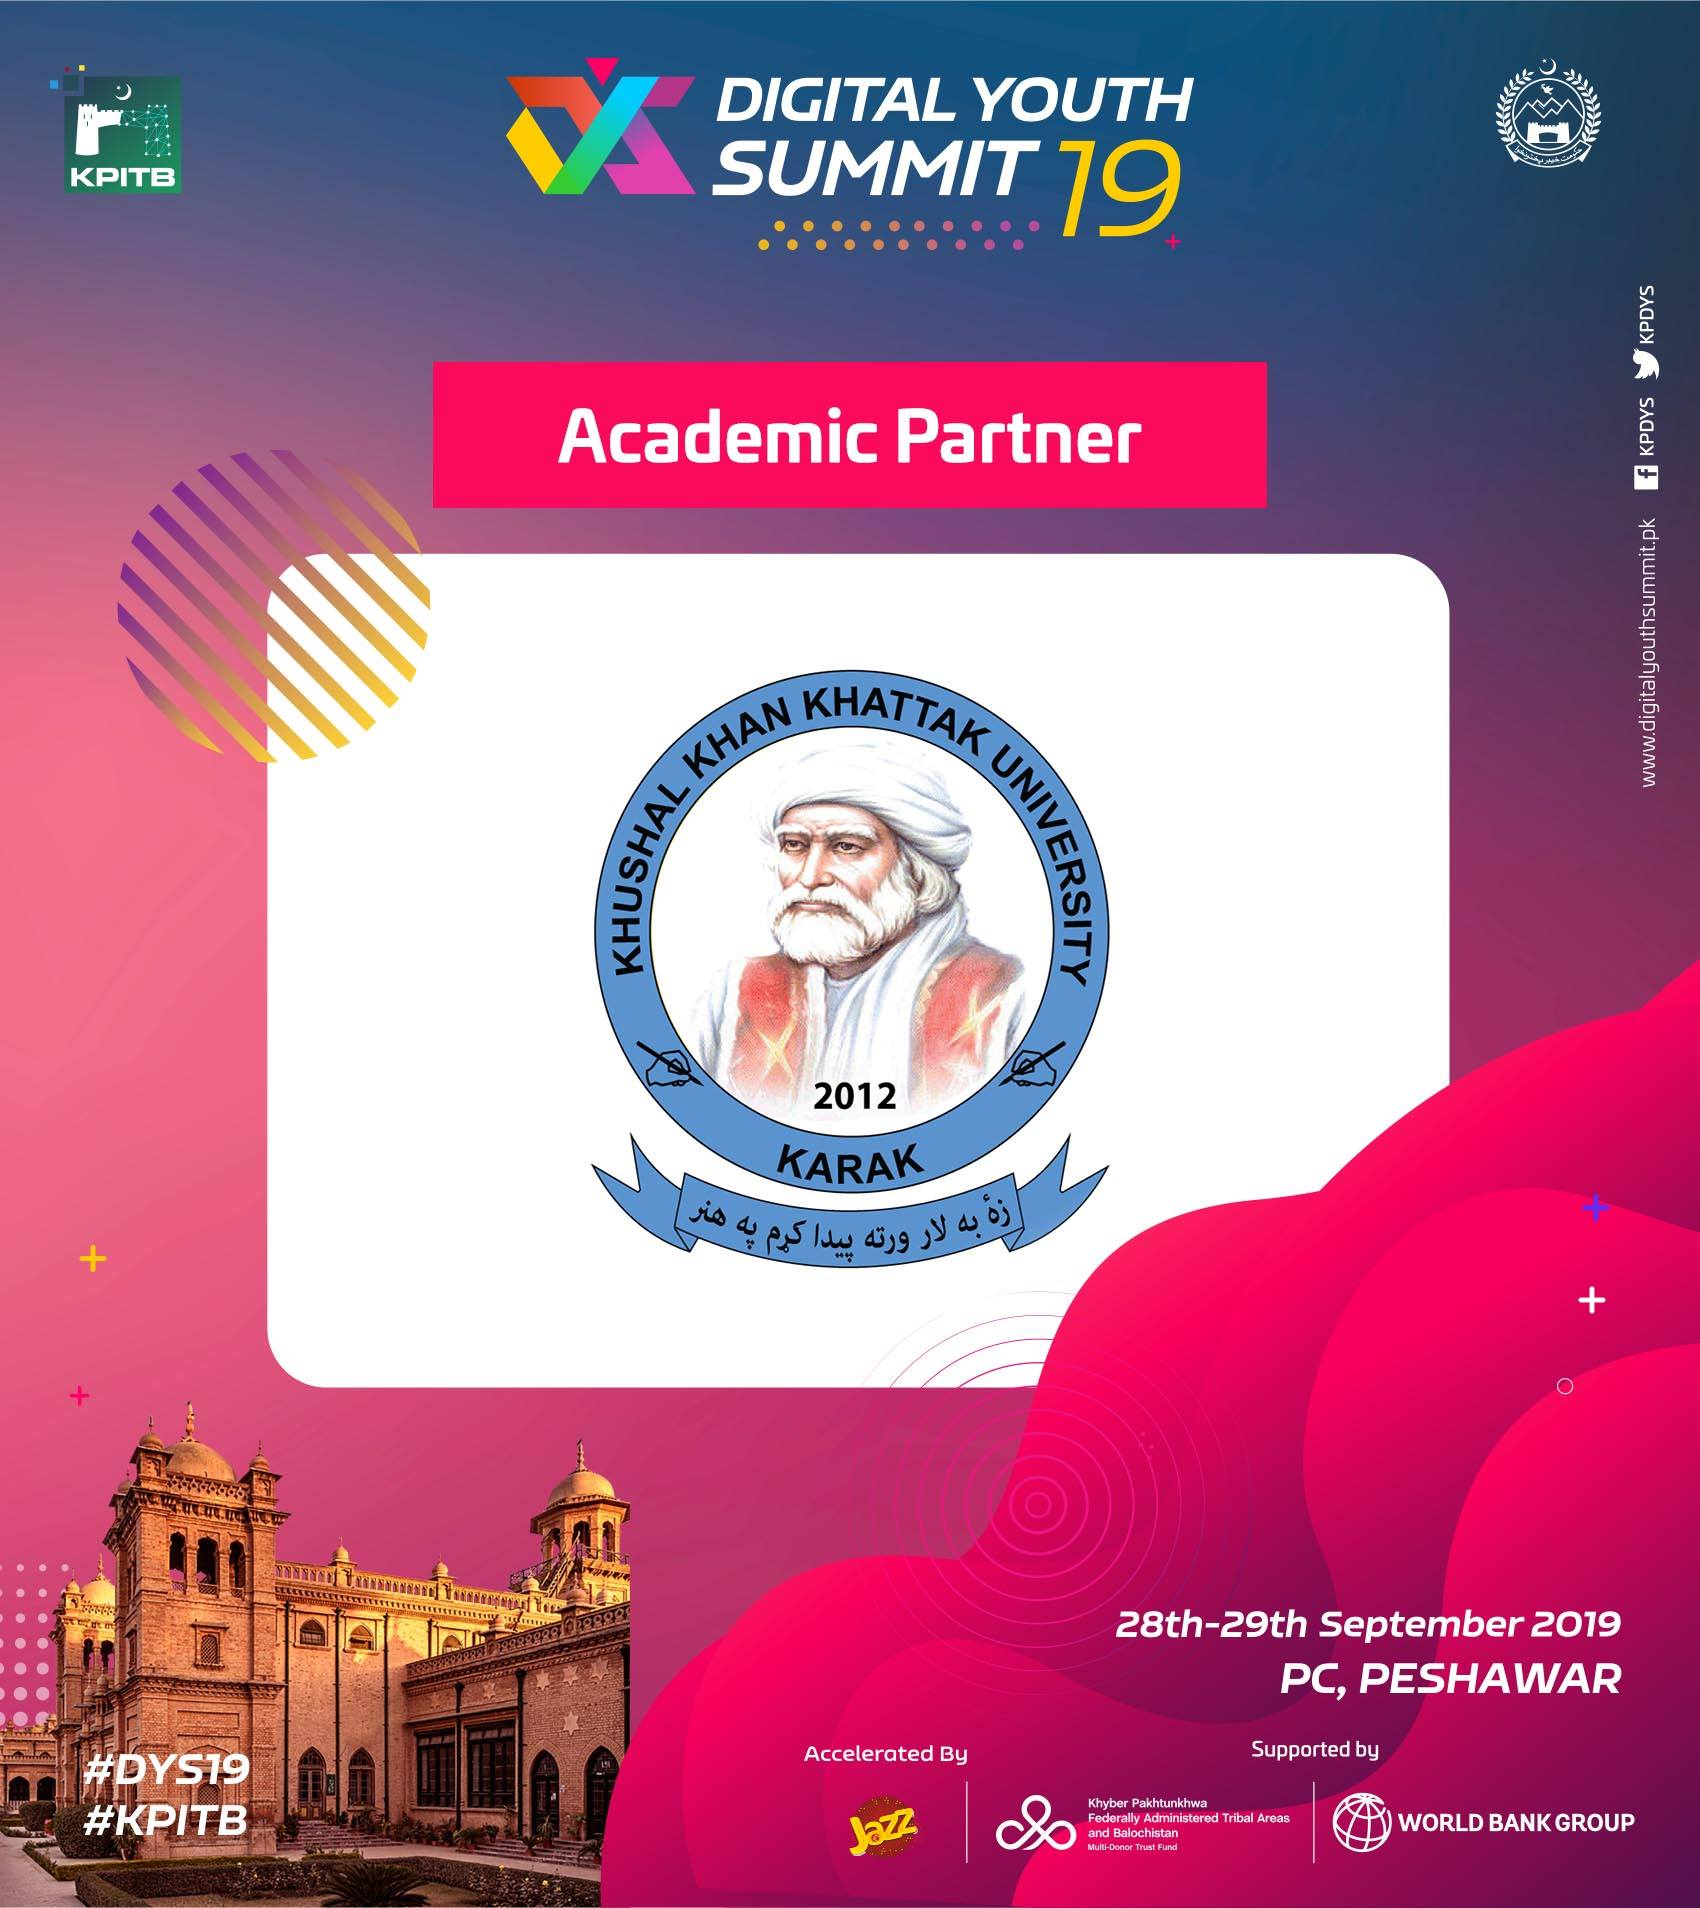 Digital Youth Summit: Academic Partner